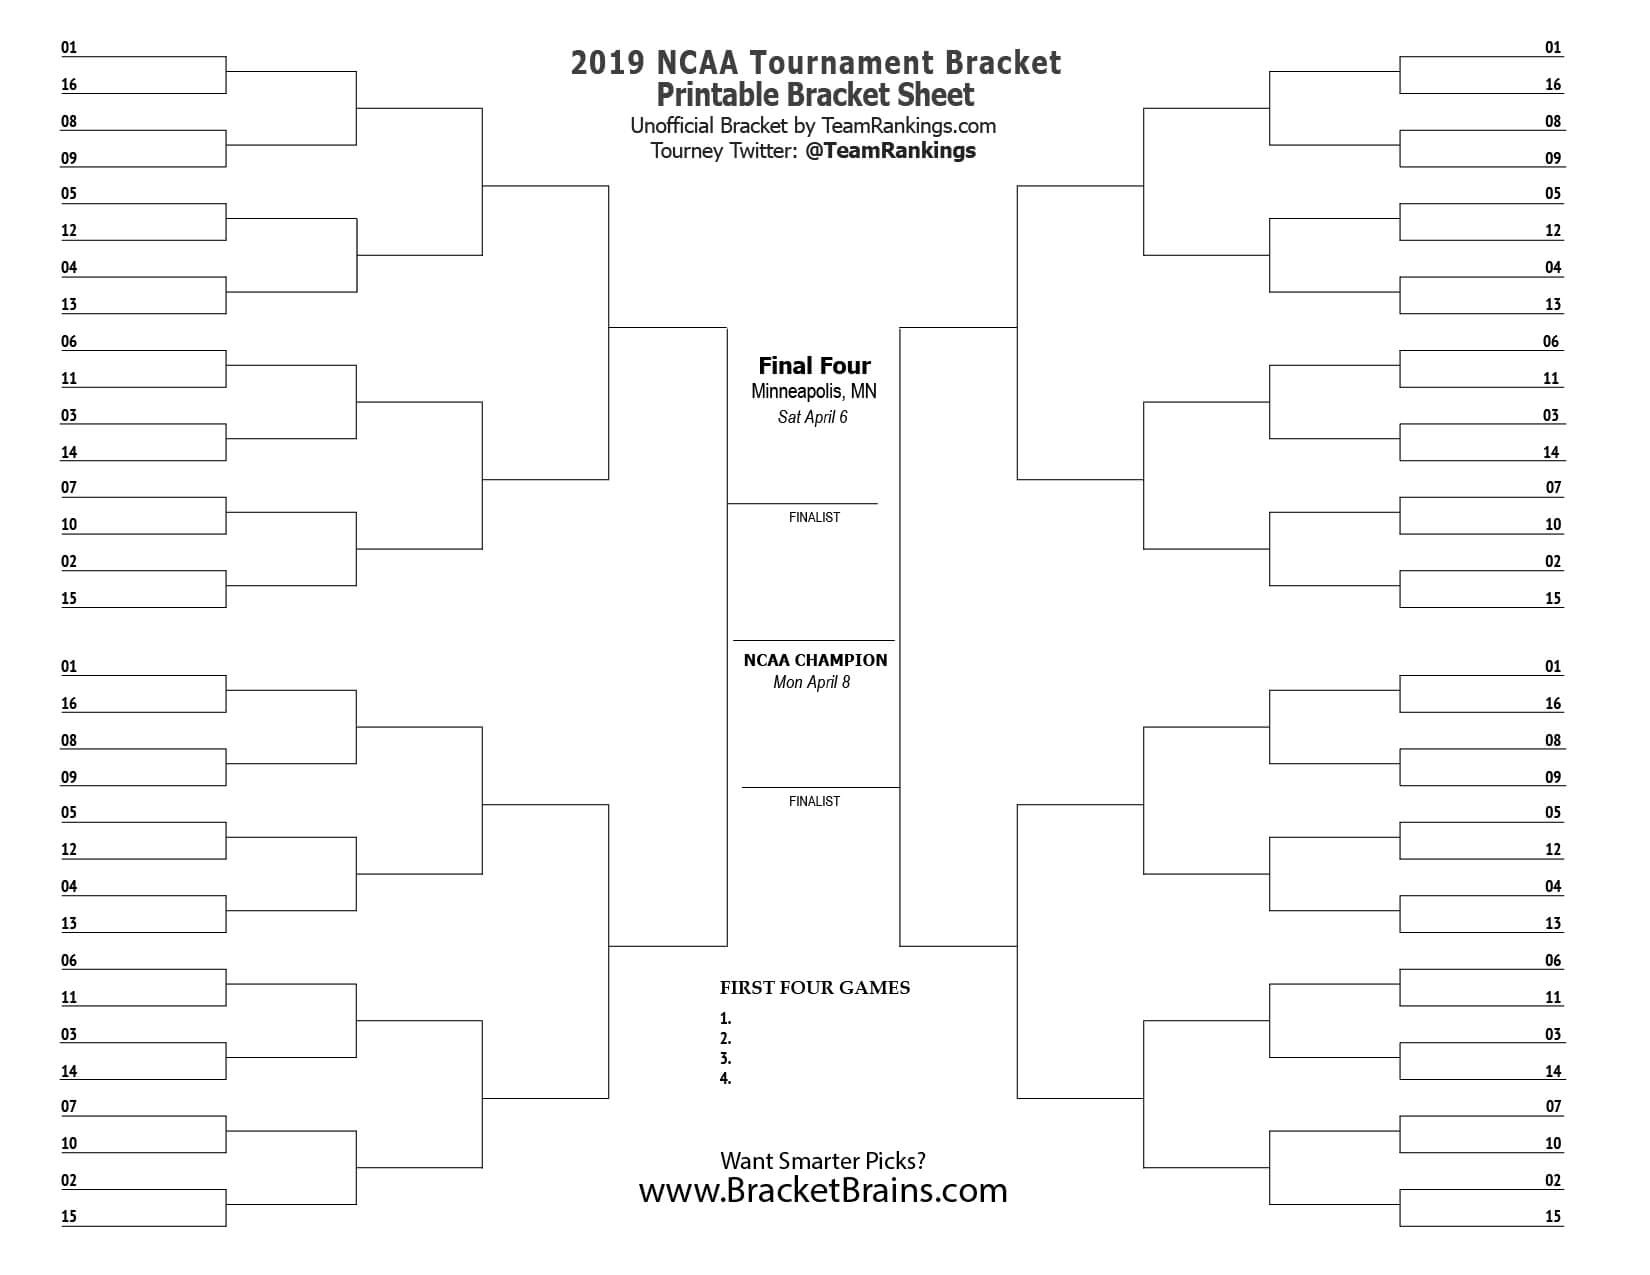 Free Printable Brackets (92+ Images In Collection) Page 2 - Free Printable Brackets